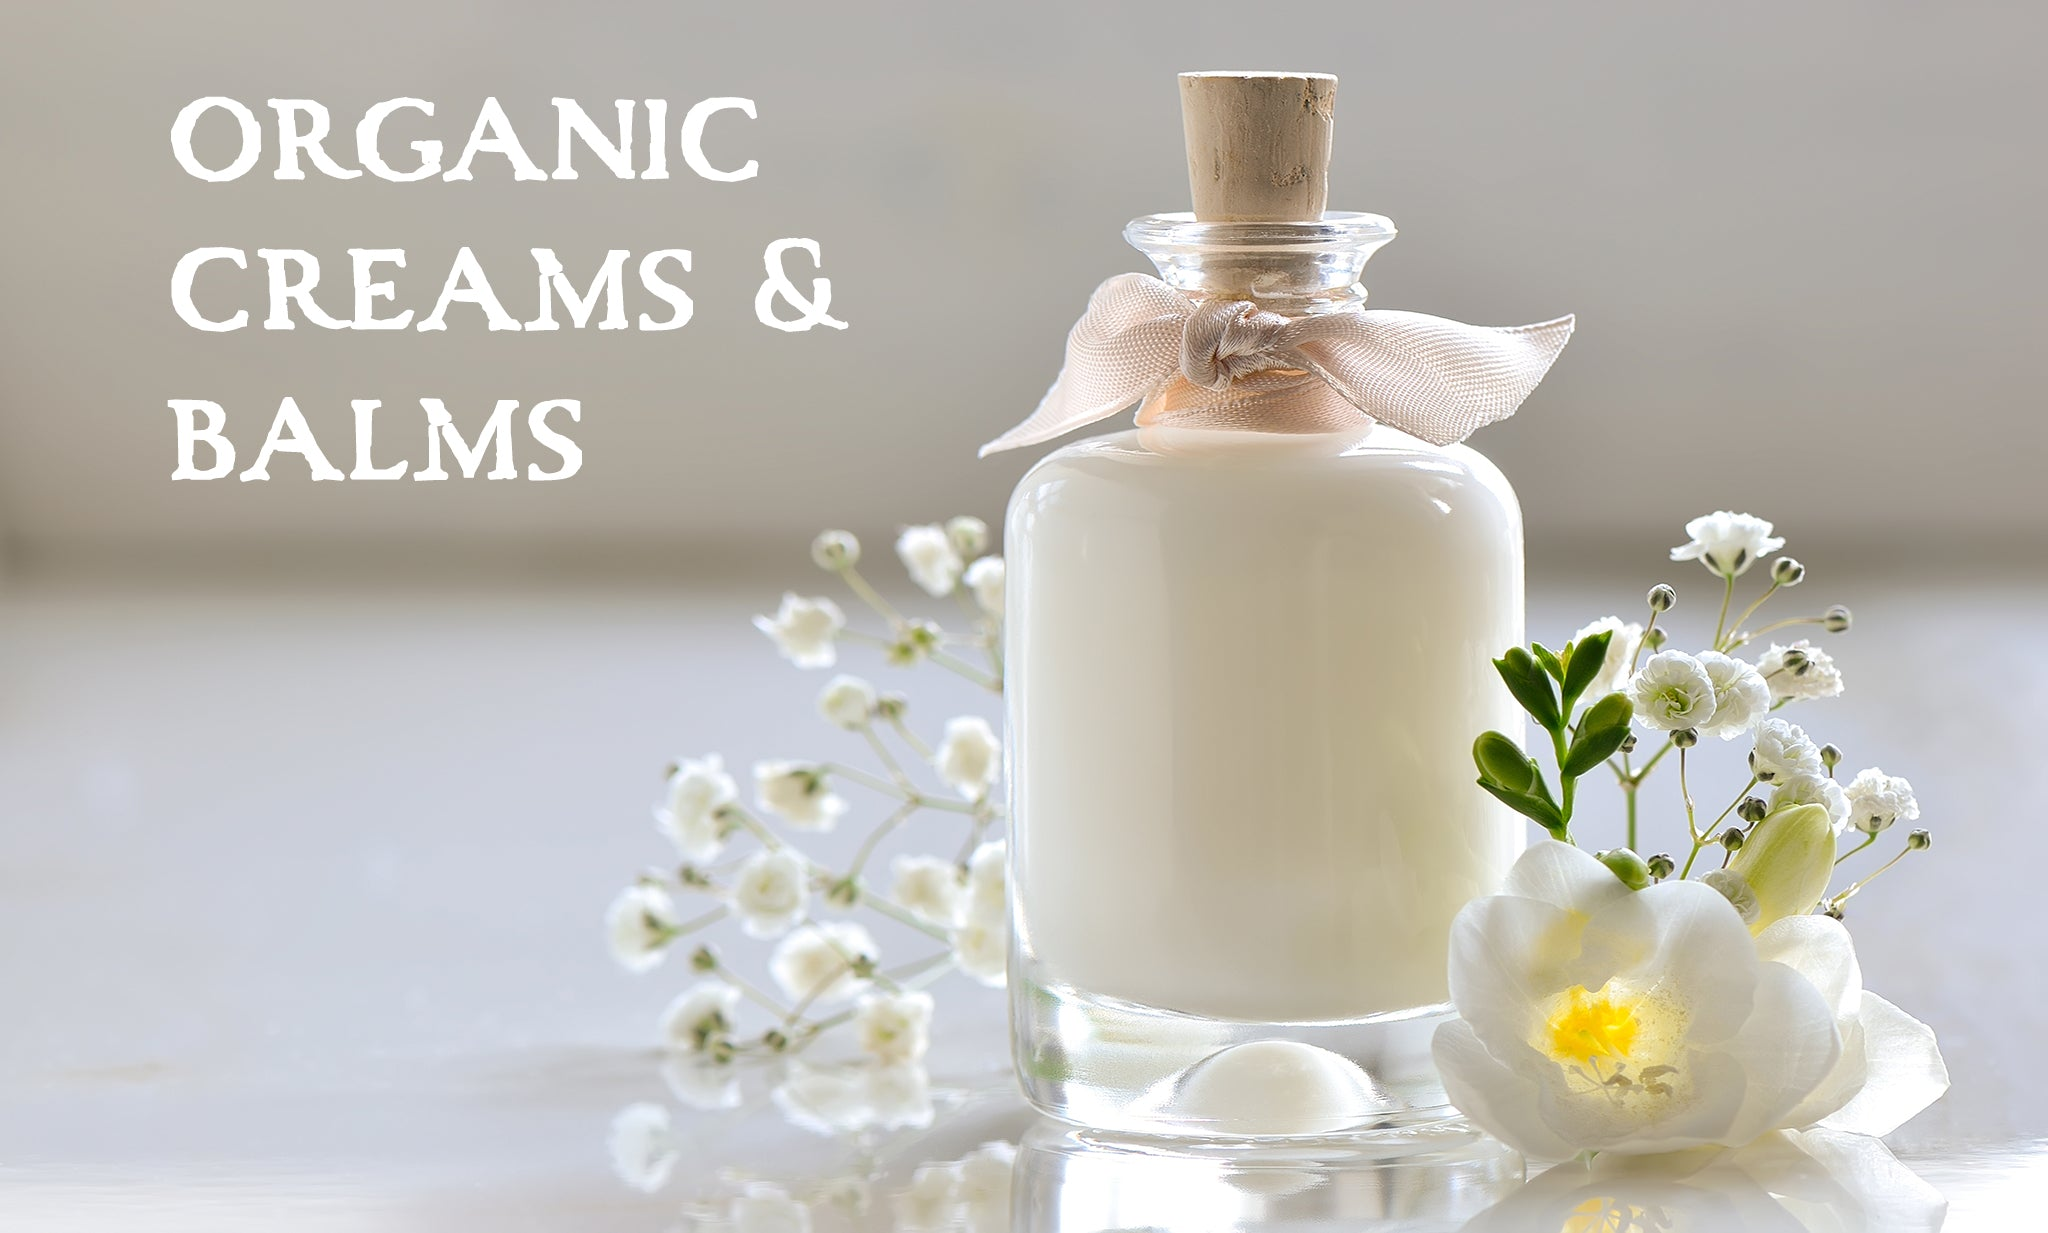 organic creams and balms handcrafted in small batches using certified organic ingredients and pure essential oils